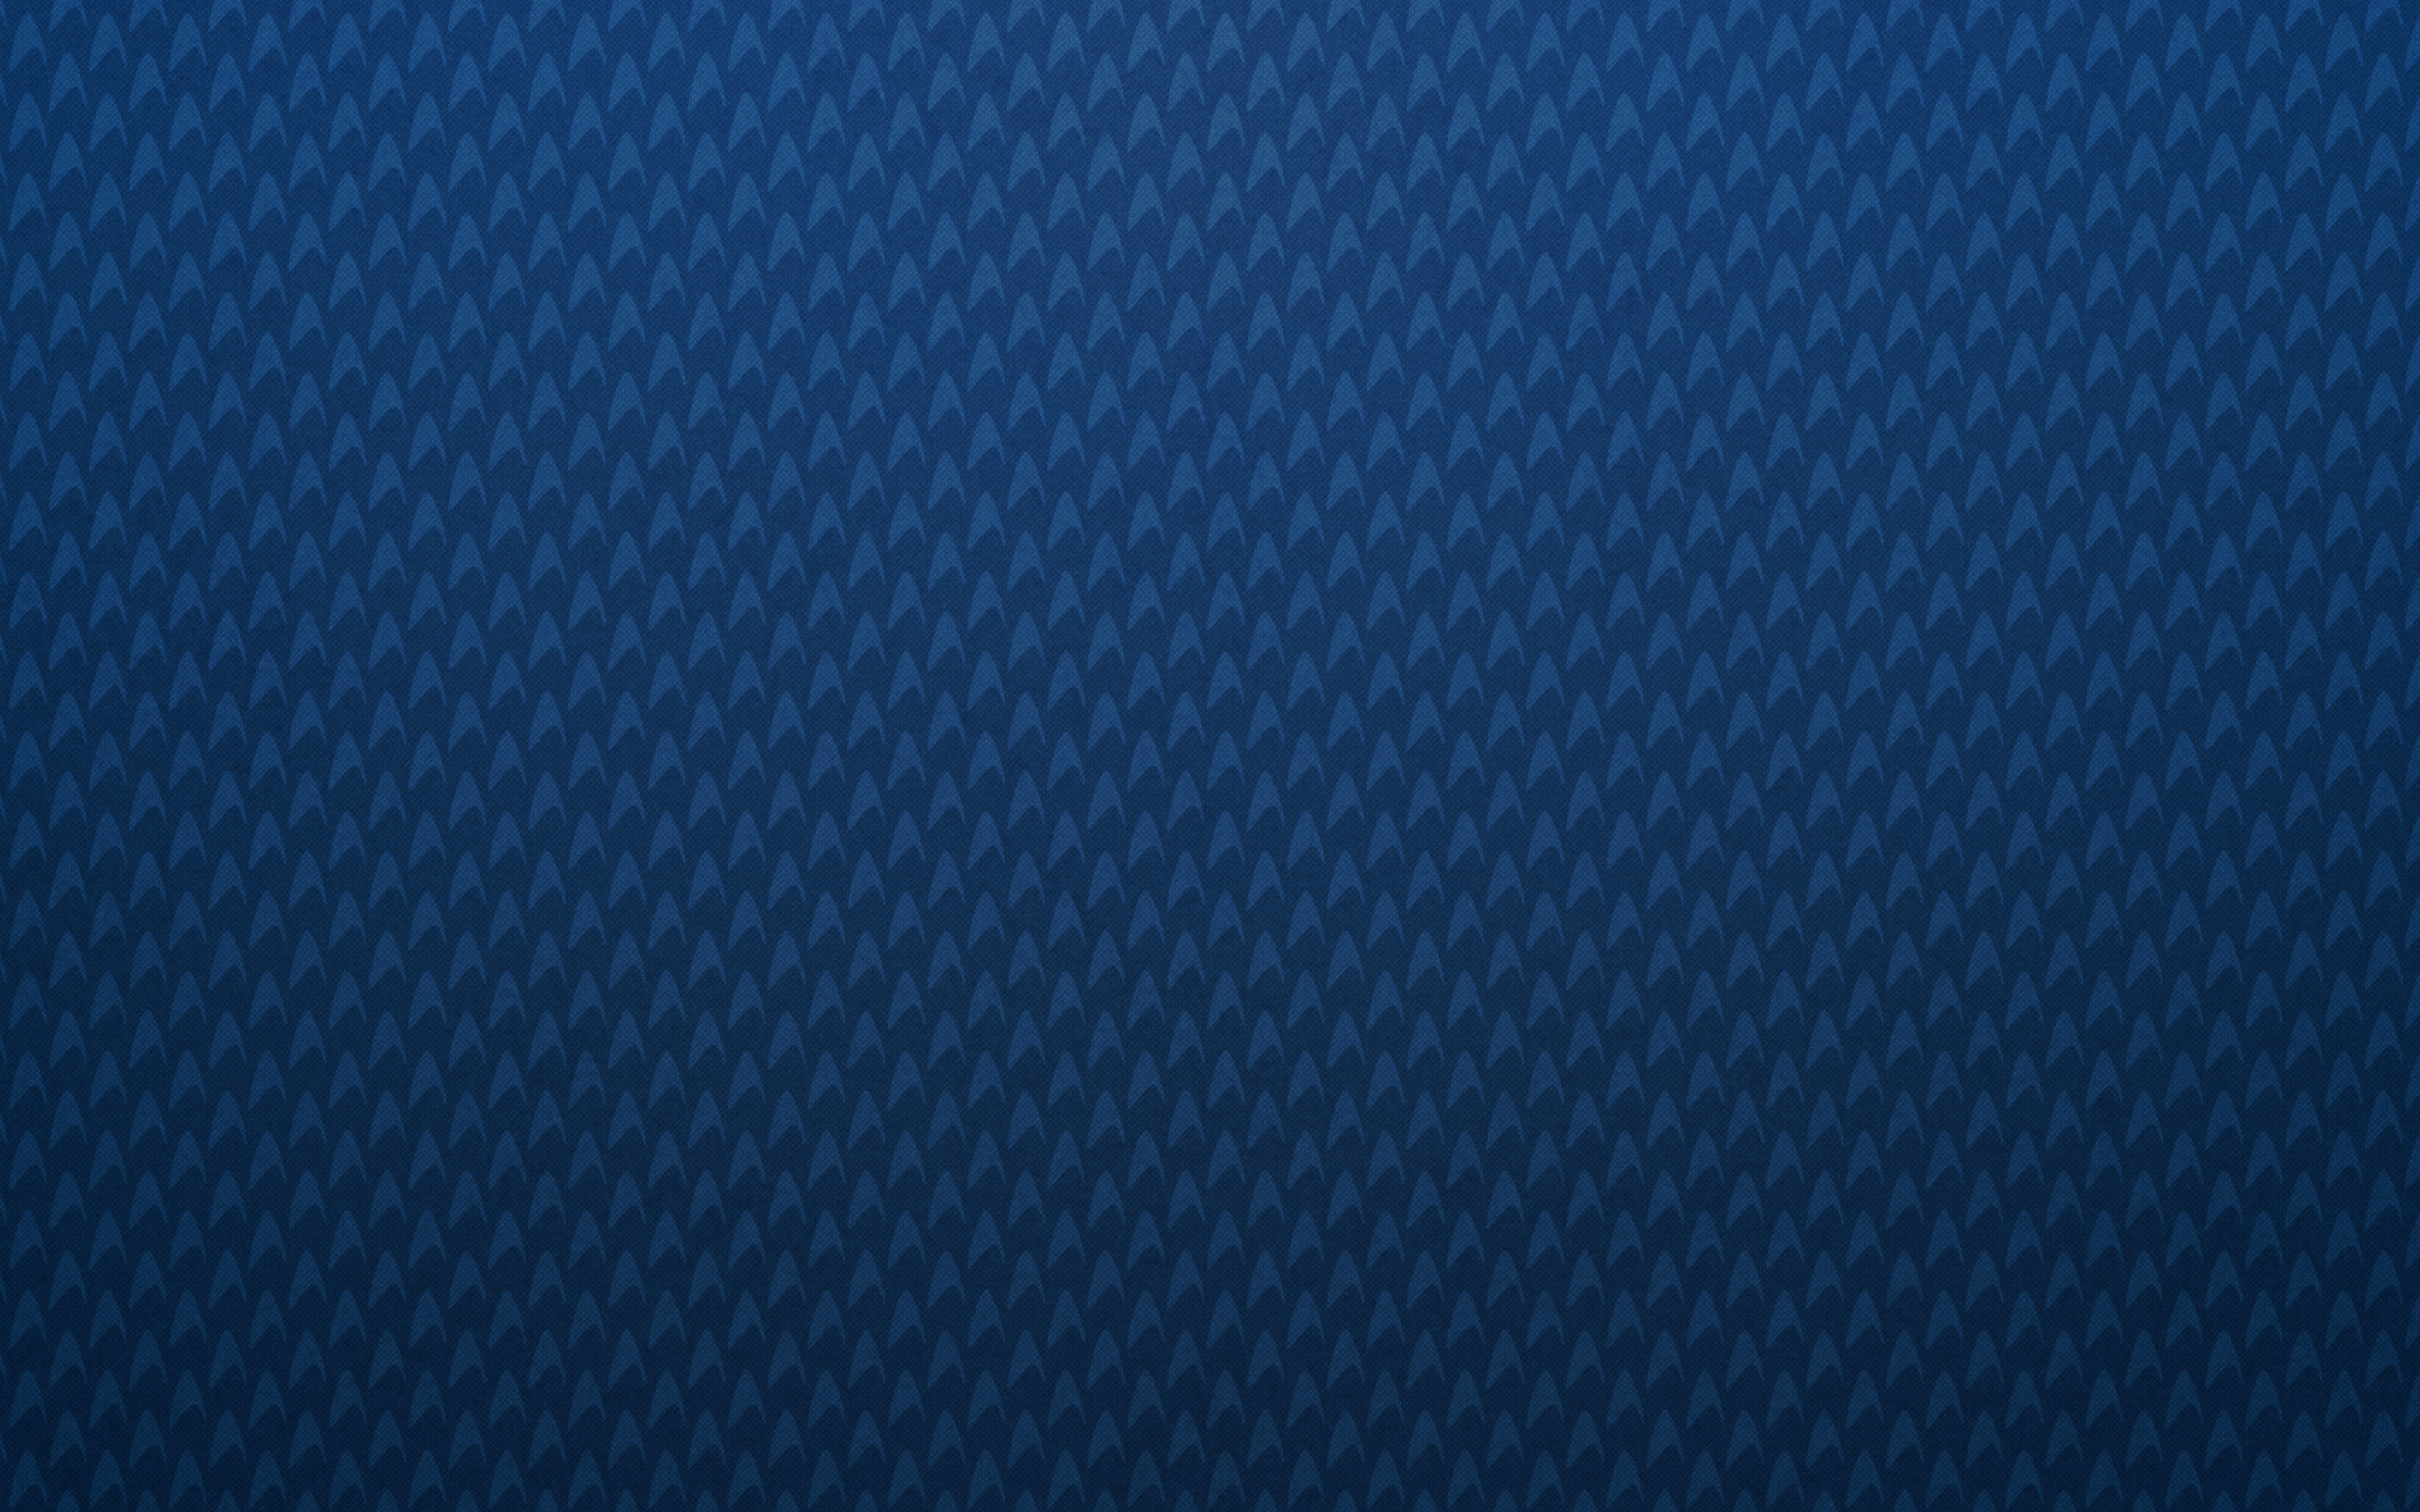 Texture Hd Wallpapers